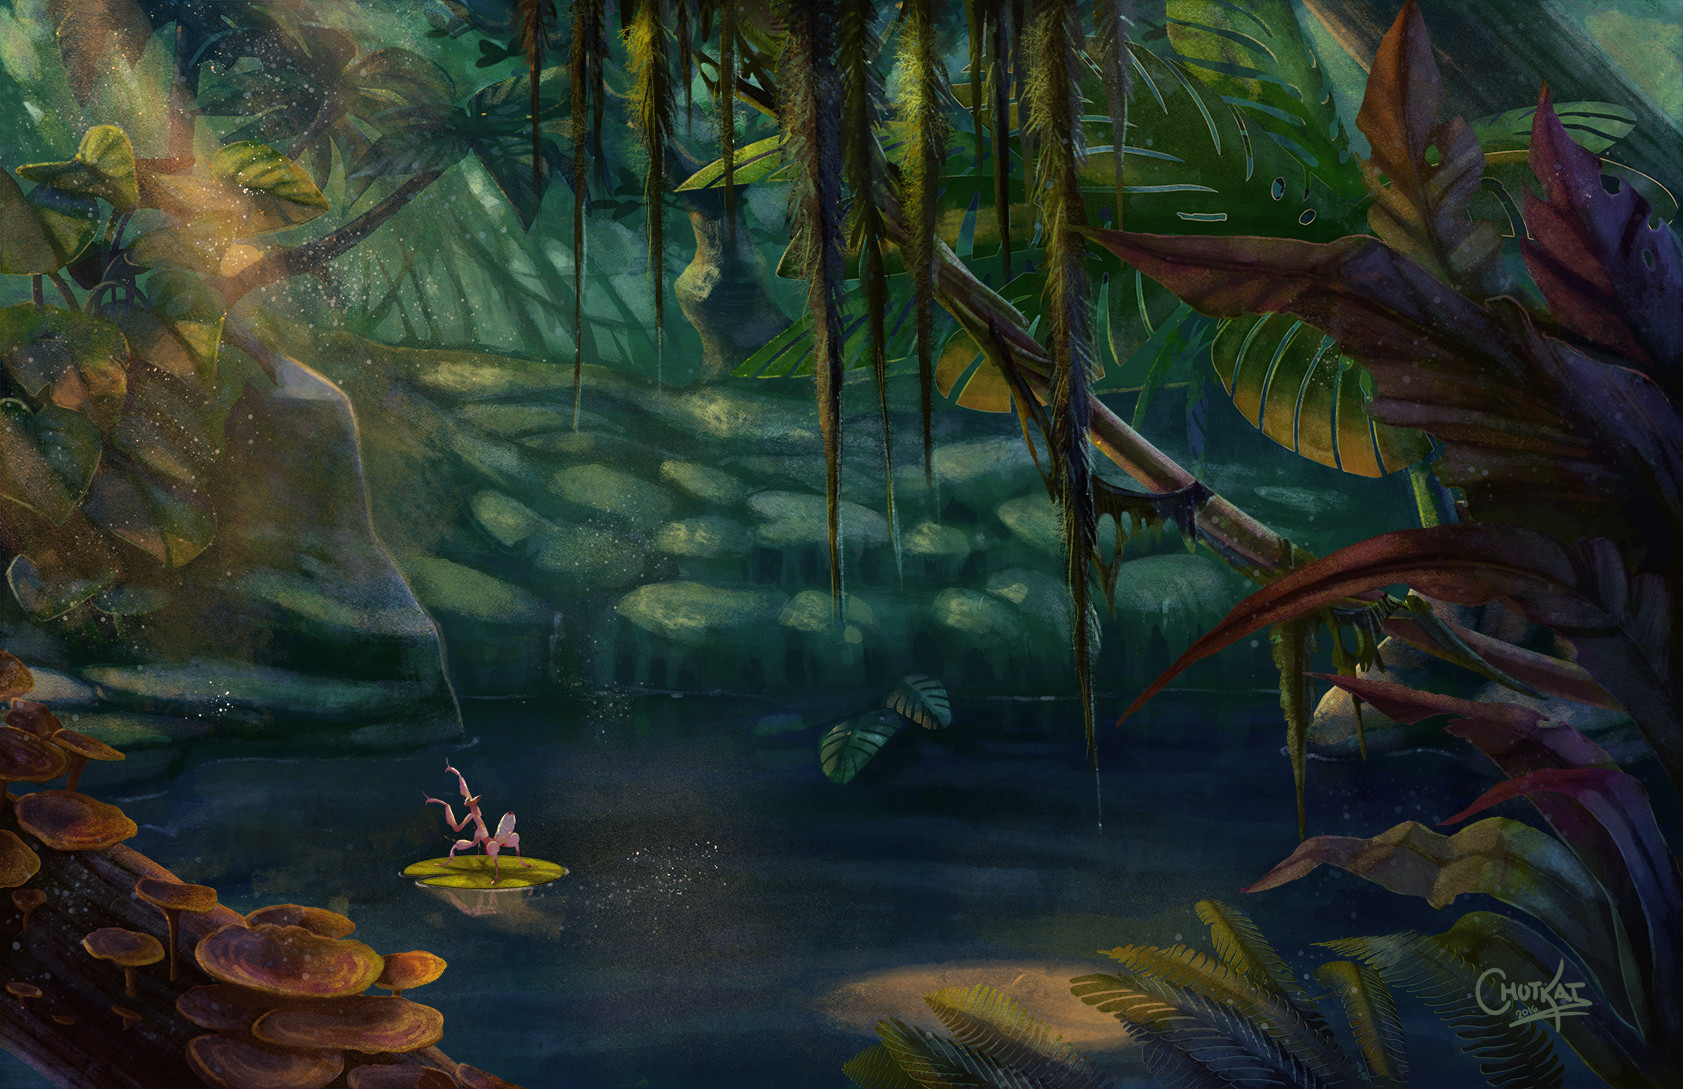 Final Background Illustration. - no character